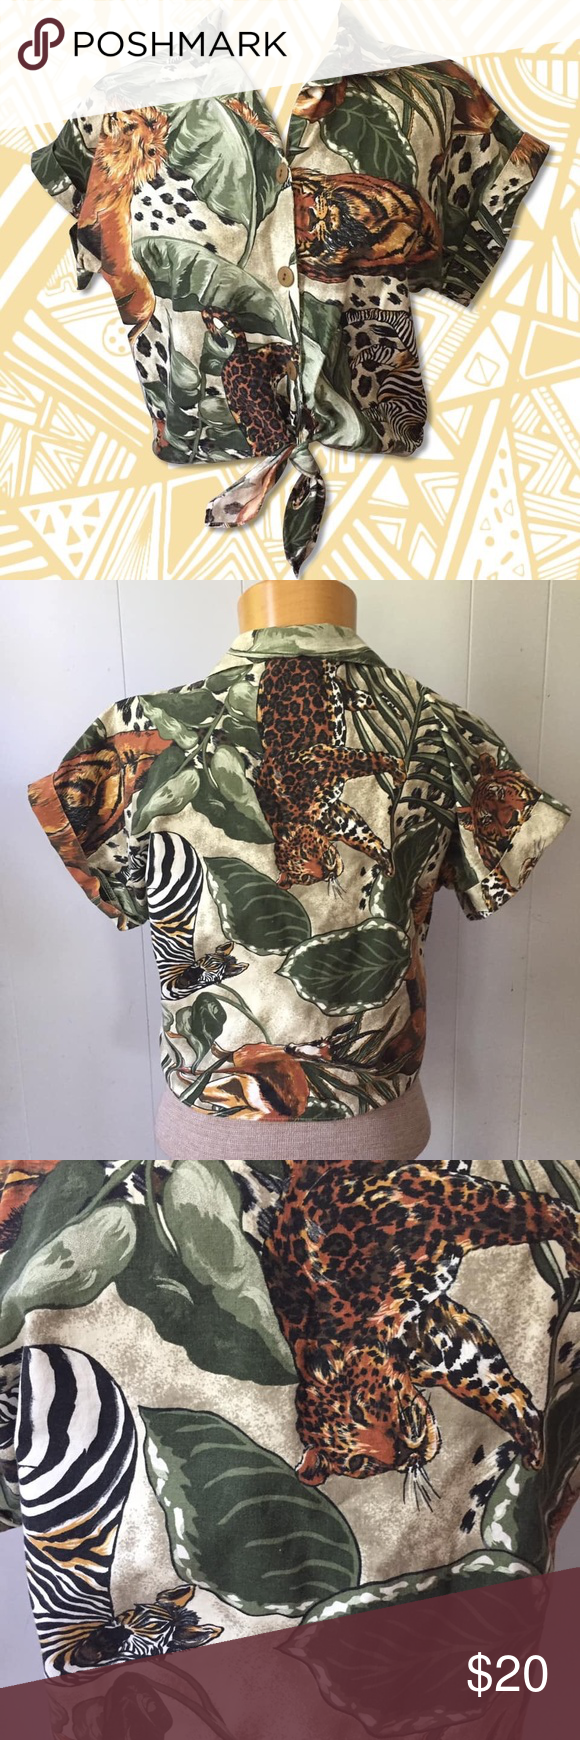 Vintage Jungle Pattern Button Up Knotted Crop Top MLove love love this vintage crop top. Really cool jungle print. Size is unmarked but my guess is about S-M but please refer to flat measurements to be sure. In beautiful condition, no visible flaws.  Chest: 20  Length: 19  Bicep: 8  Sleeve Length: 13  I am always open to offers!  Please message me if you would like additional info on item. All clothing measurements are taken on a flat surface, un-stretched. connections Tops Crop Tops #jungle #junglepattern